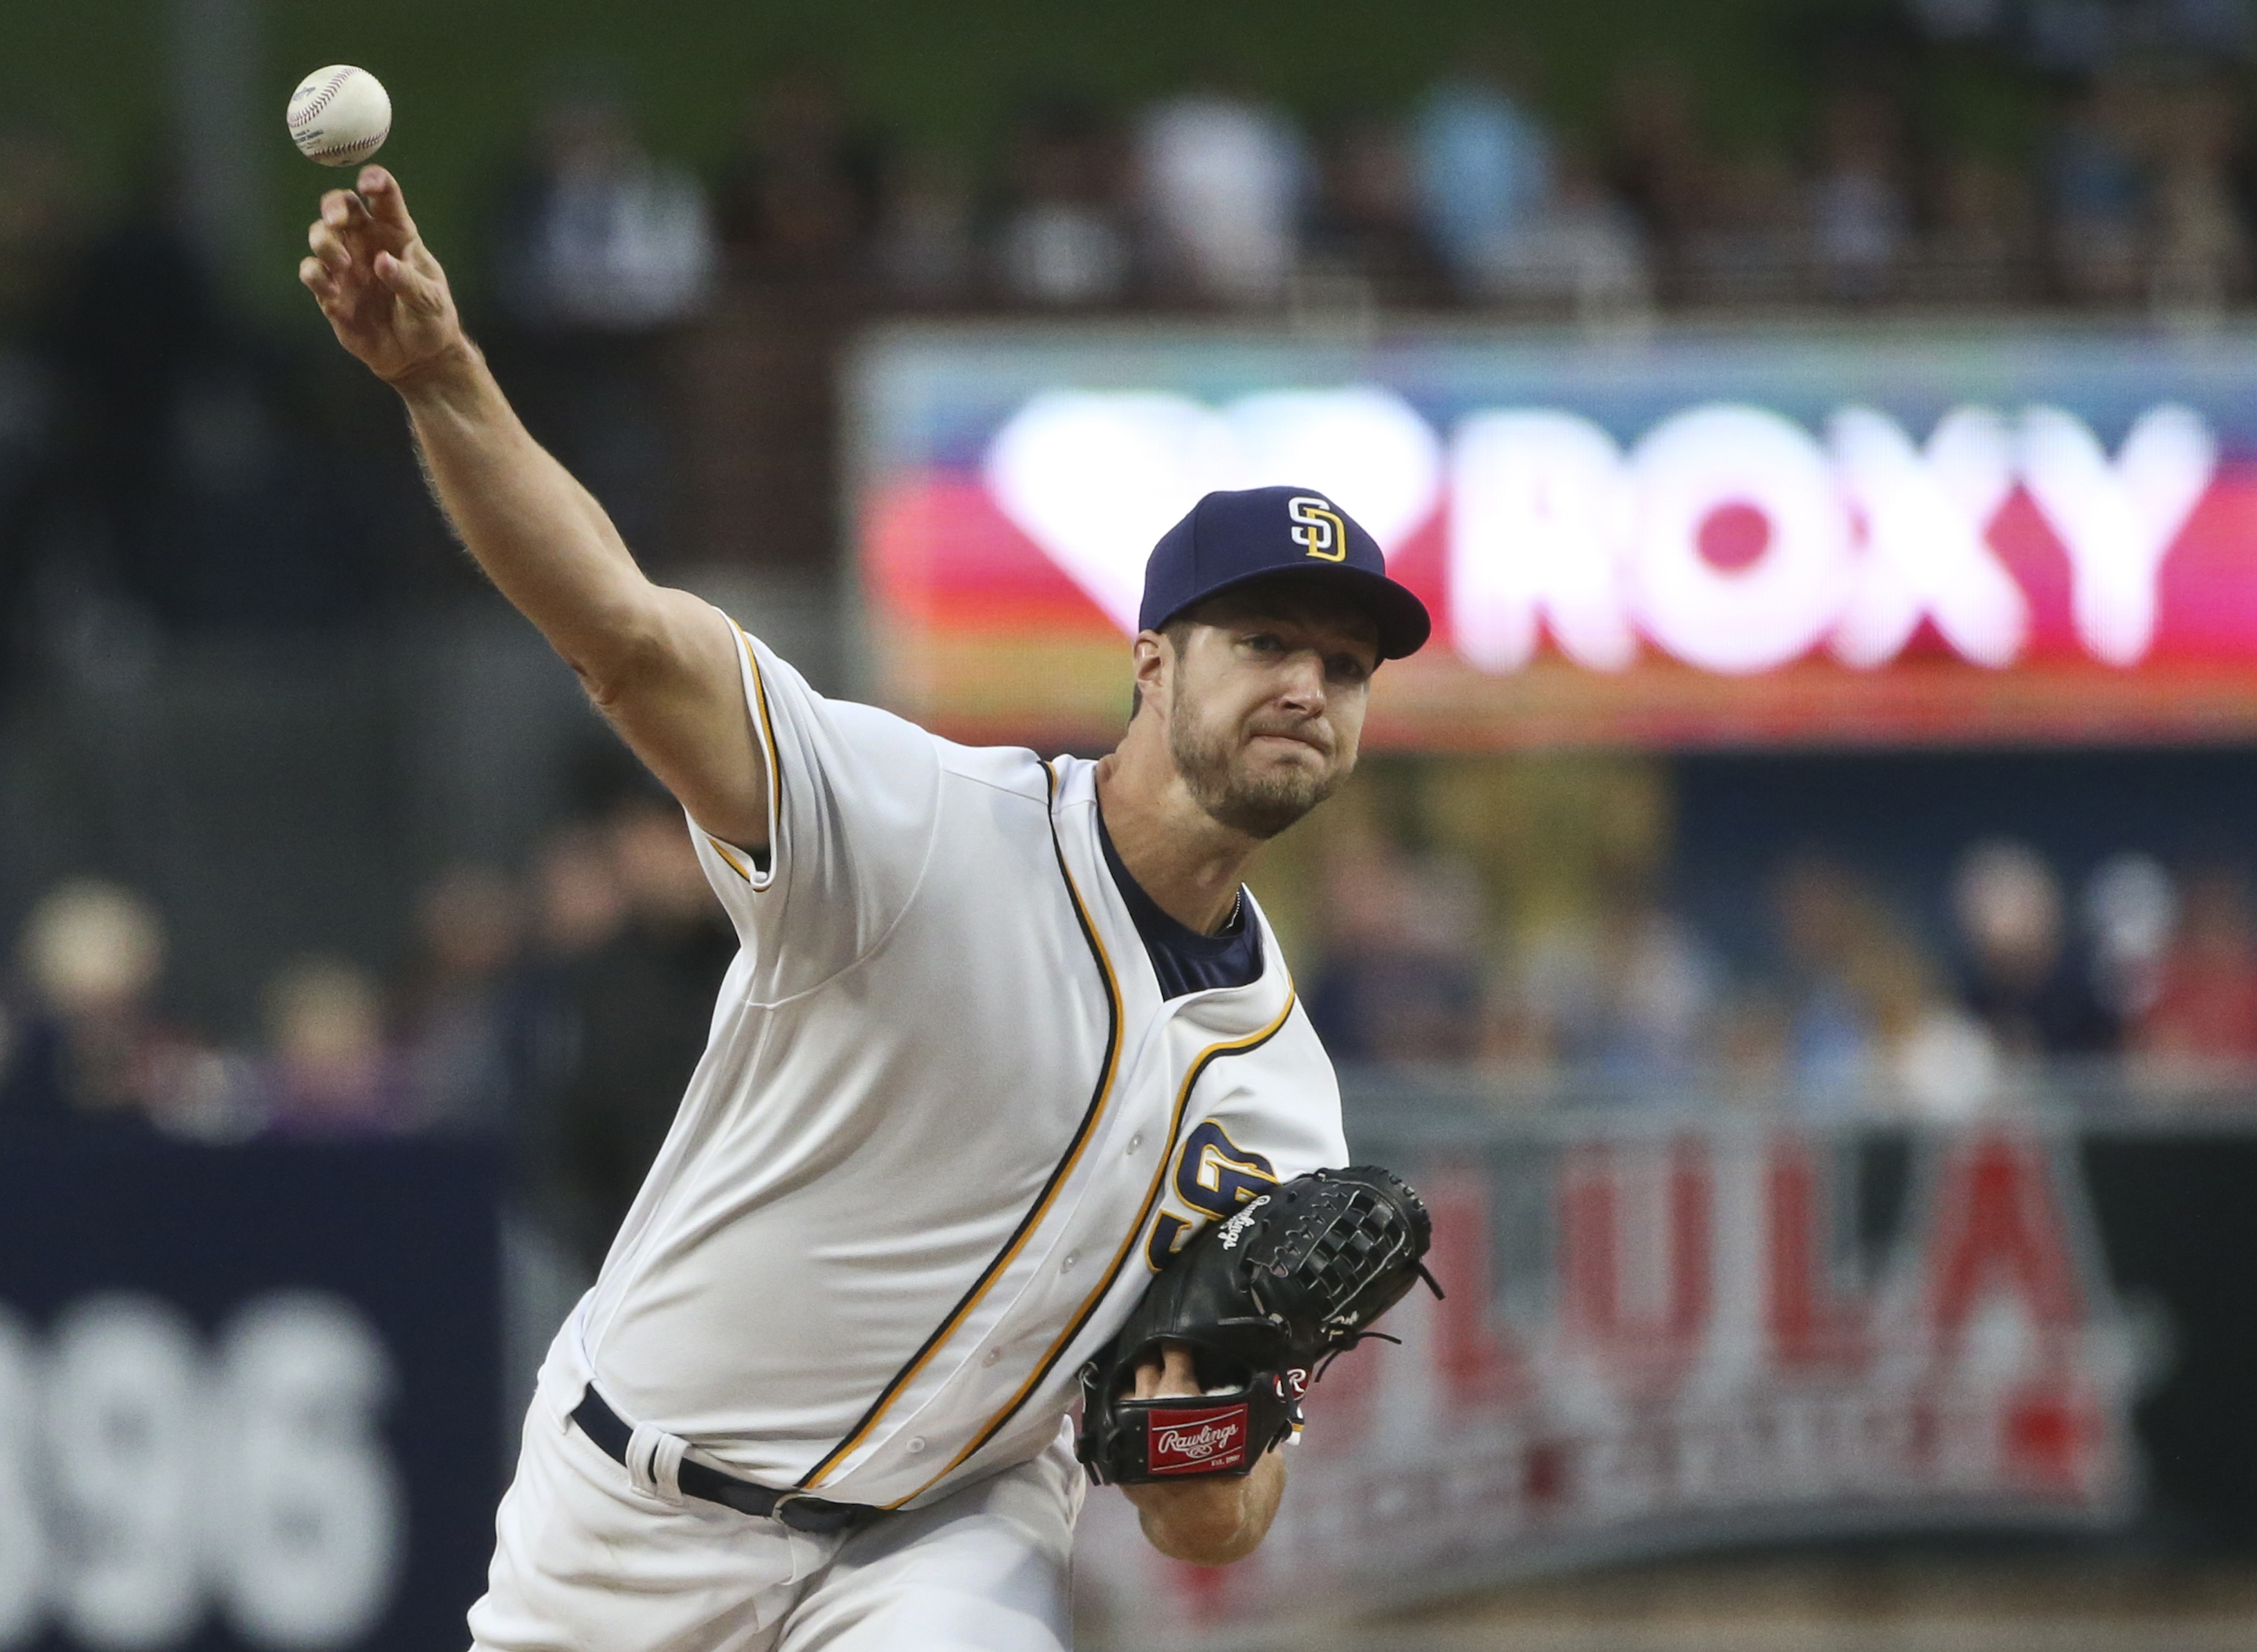 San Diego Padres starting pitcher Colin Rea throws against the San Francisco Giants during the first inning of a baseball game Tuesday, May 17, 2016, in San Diego. (AP Photo/Lenny Ignelzi)